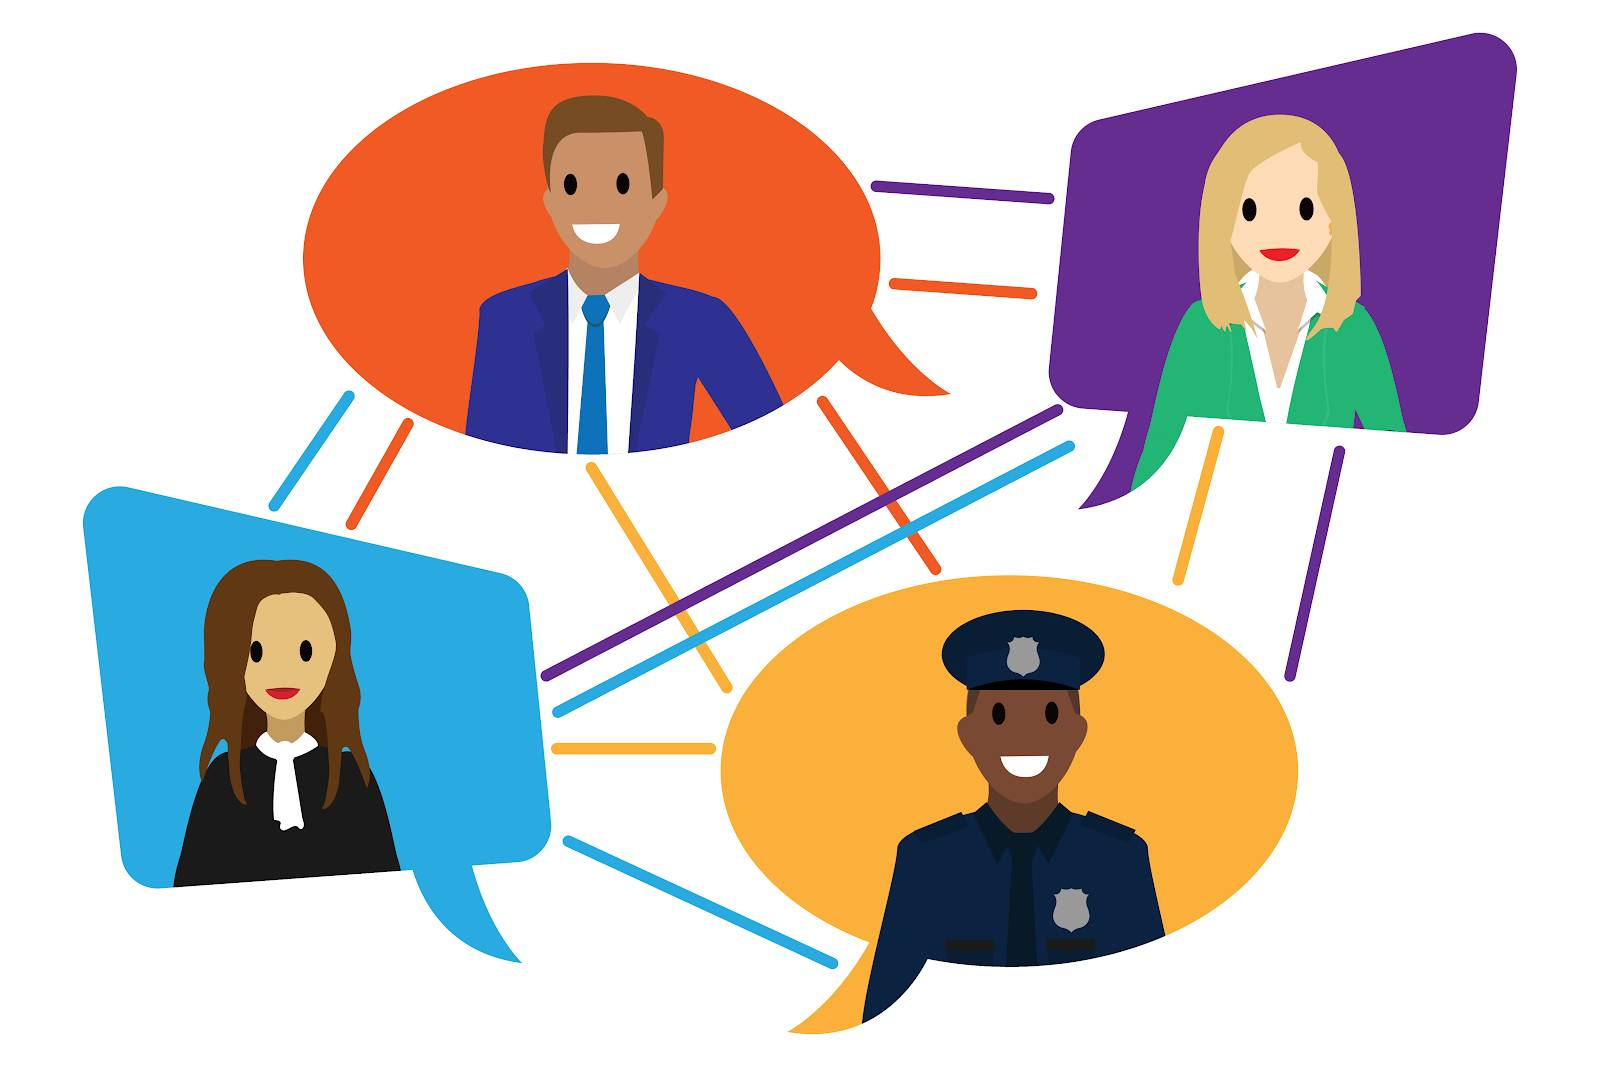 An image of a network of people in different uniforms, such as a businessman, policeman, government, with speech bubbles above their head and lines connecting them.